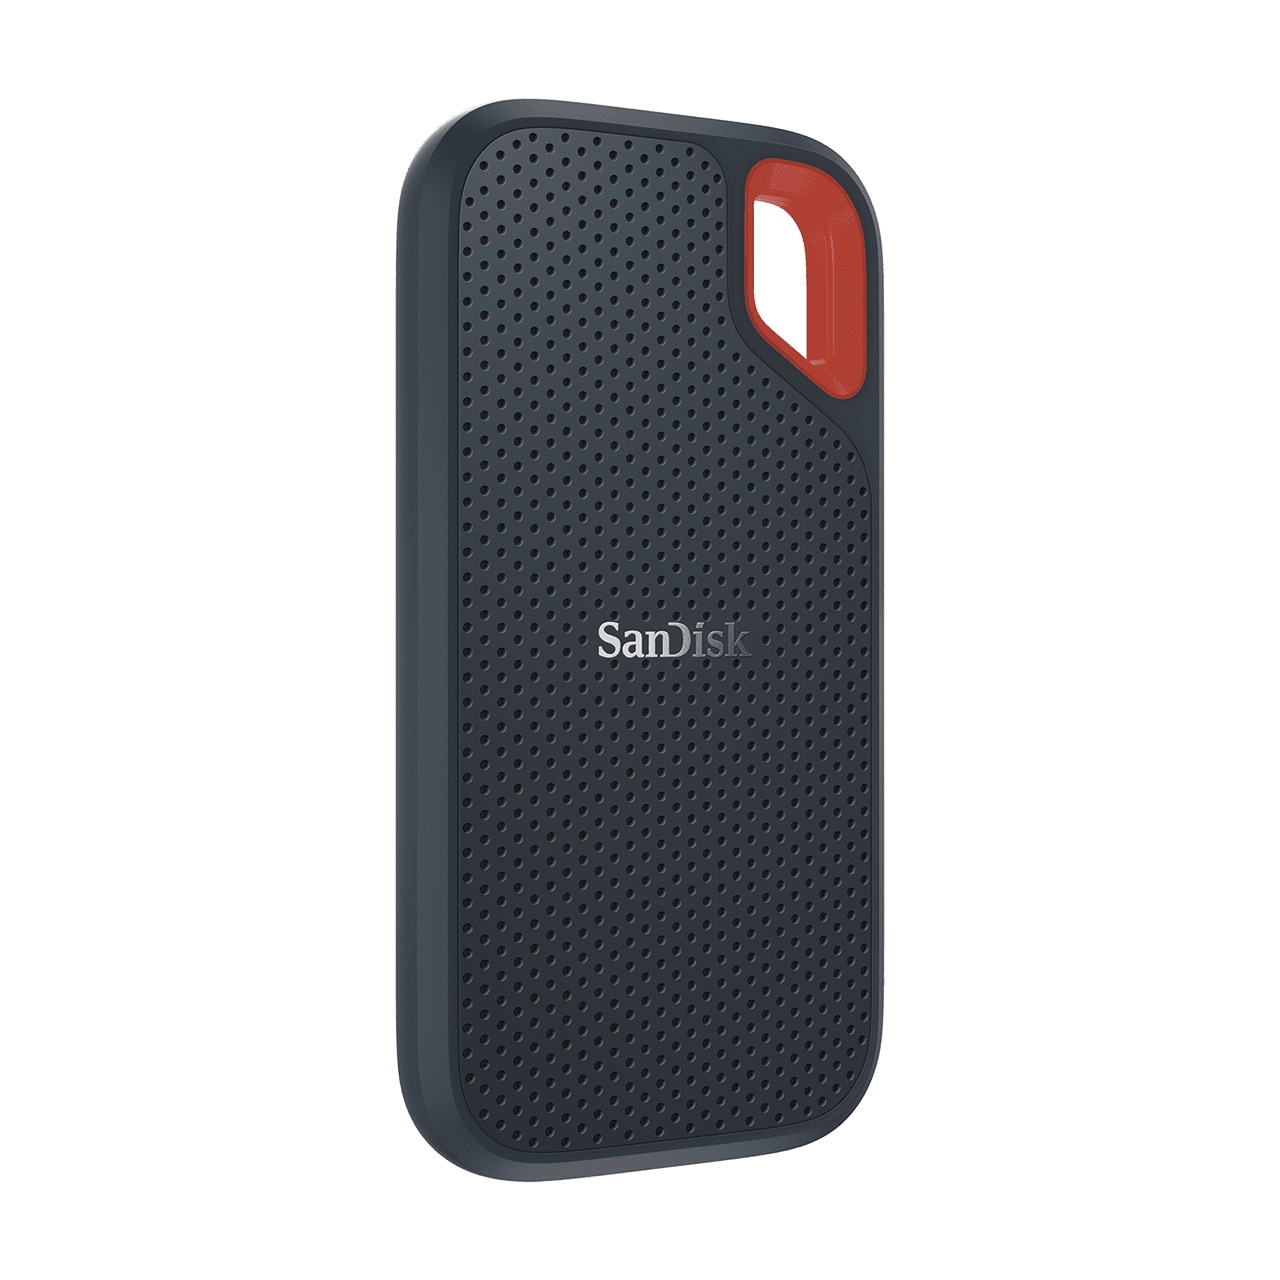 SanDisk Extreme Pro Portable SSD with up to 2,000MB/sec read/write speed